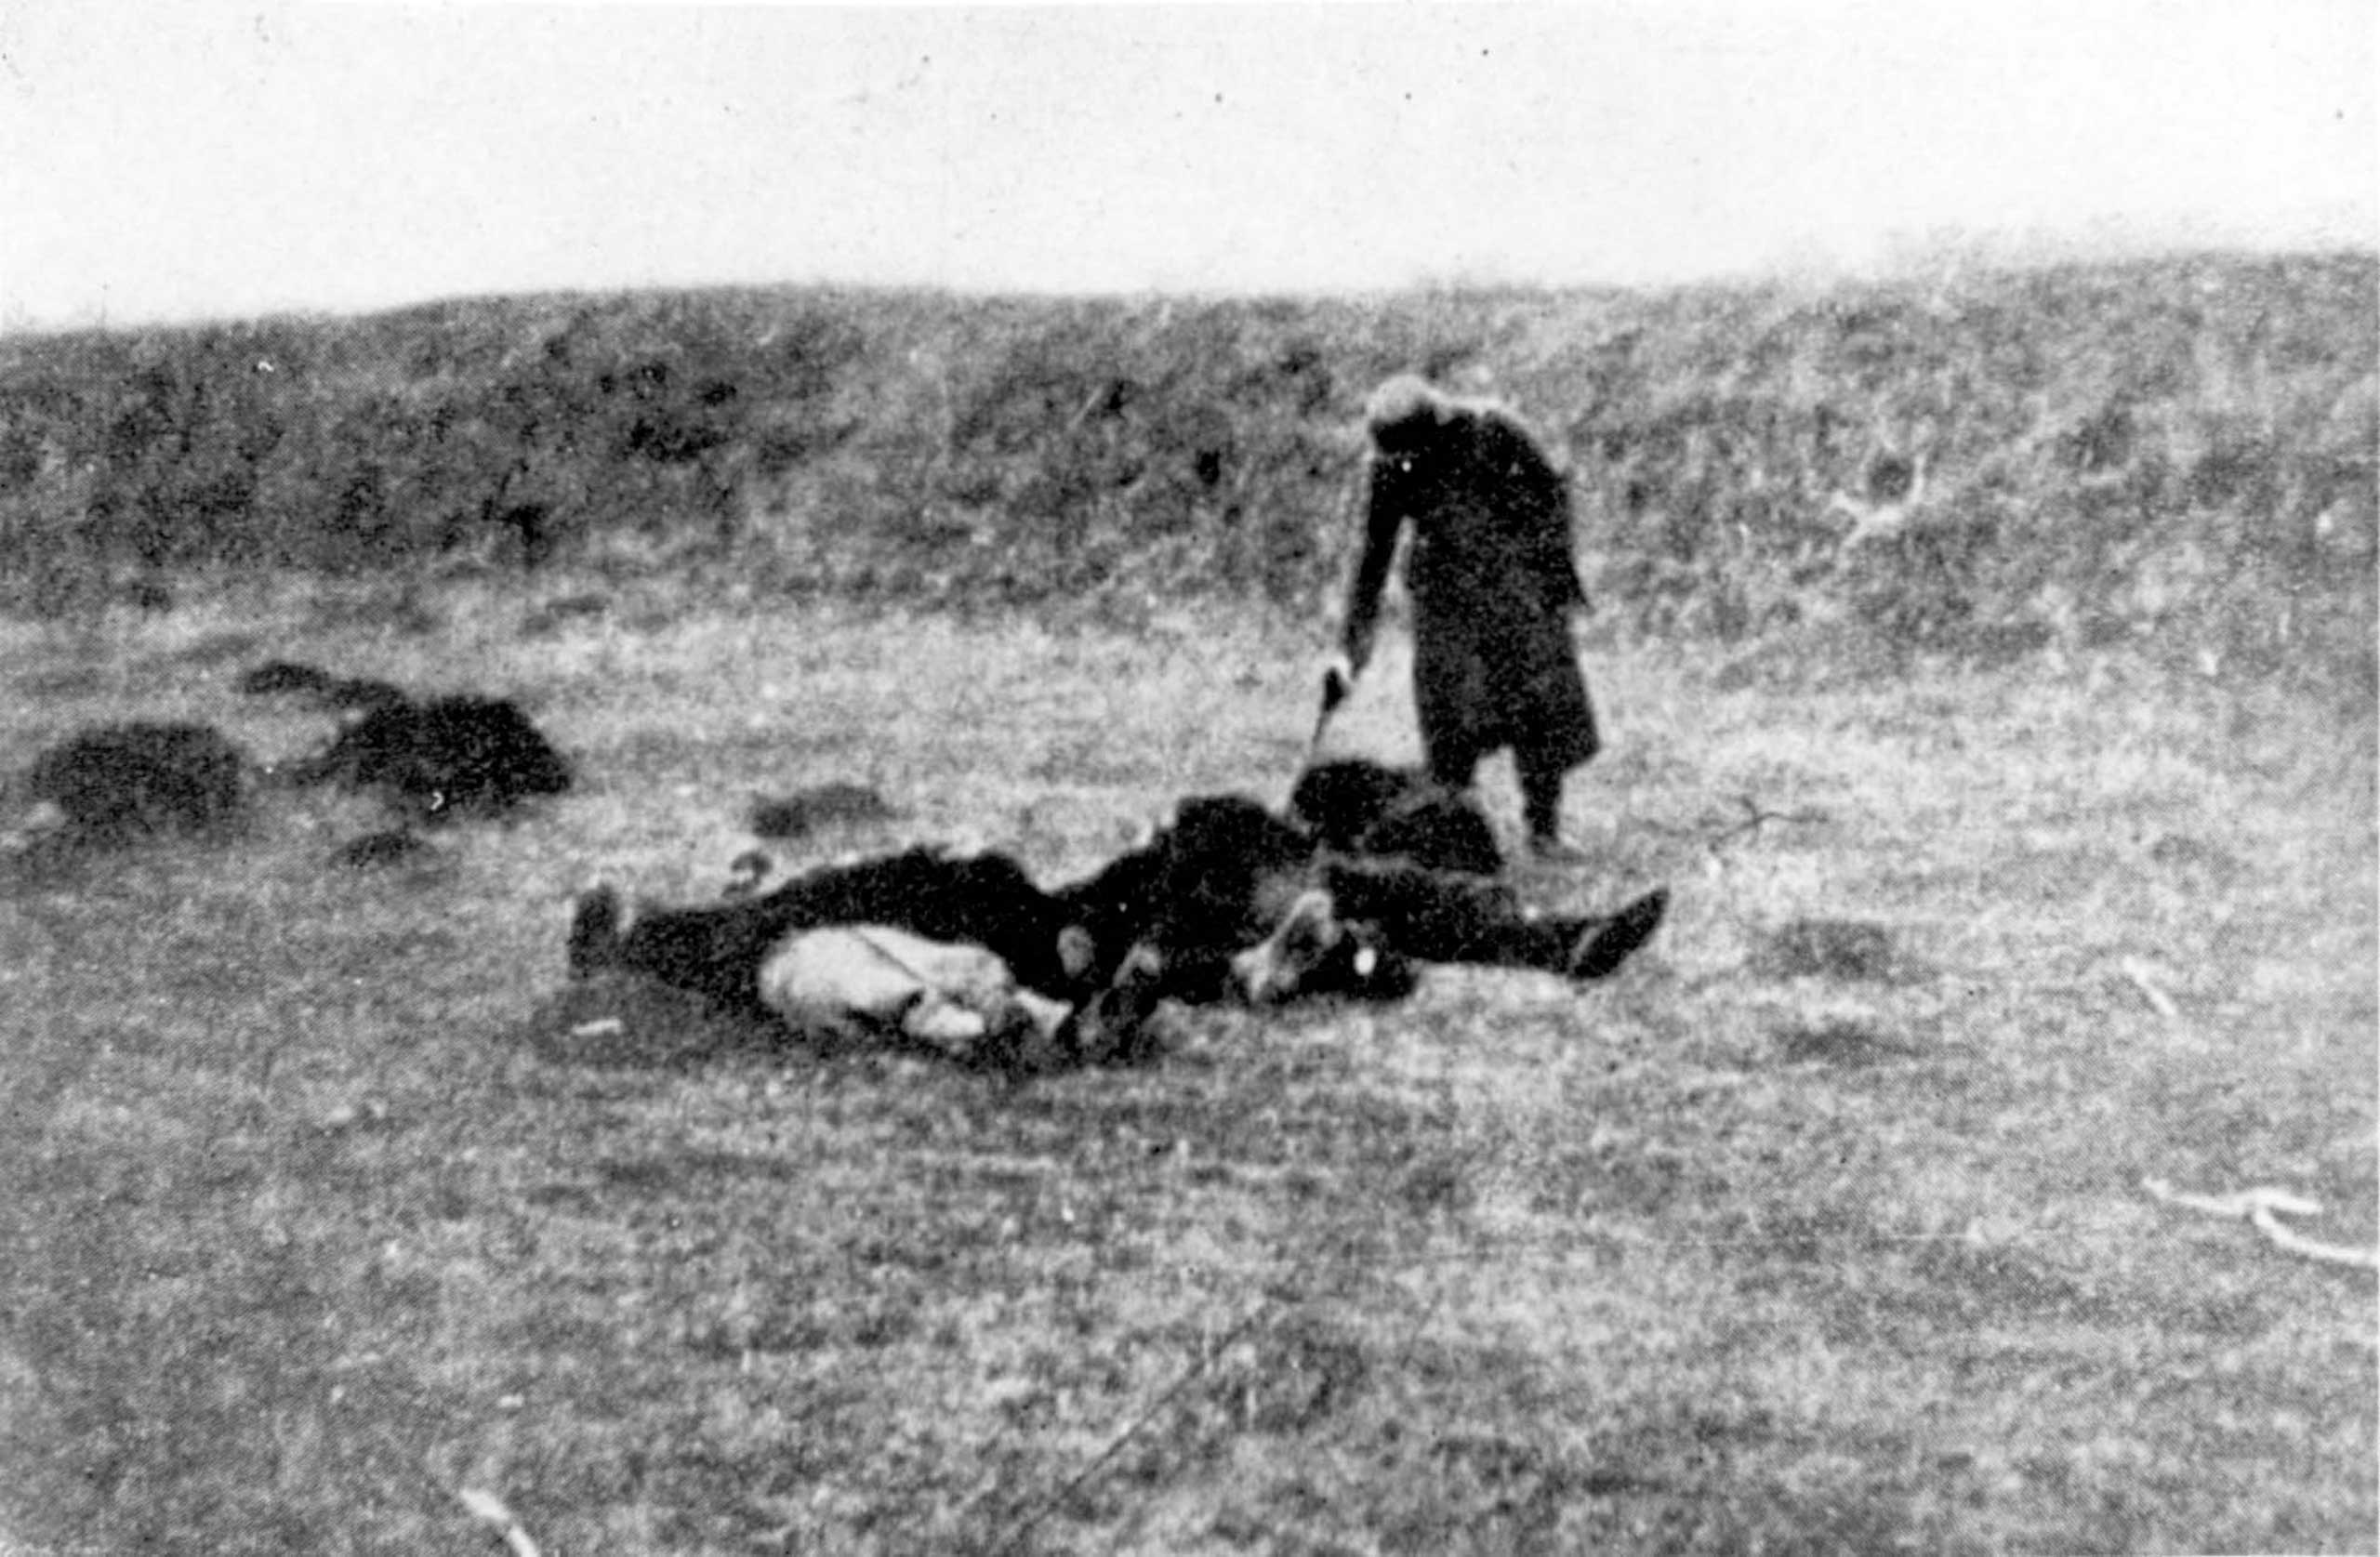 A German soldier shooting those who remained alive after a massacre in Yugoslavia, c. 1941.